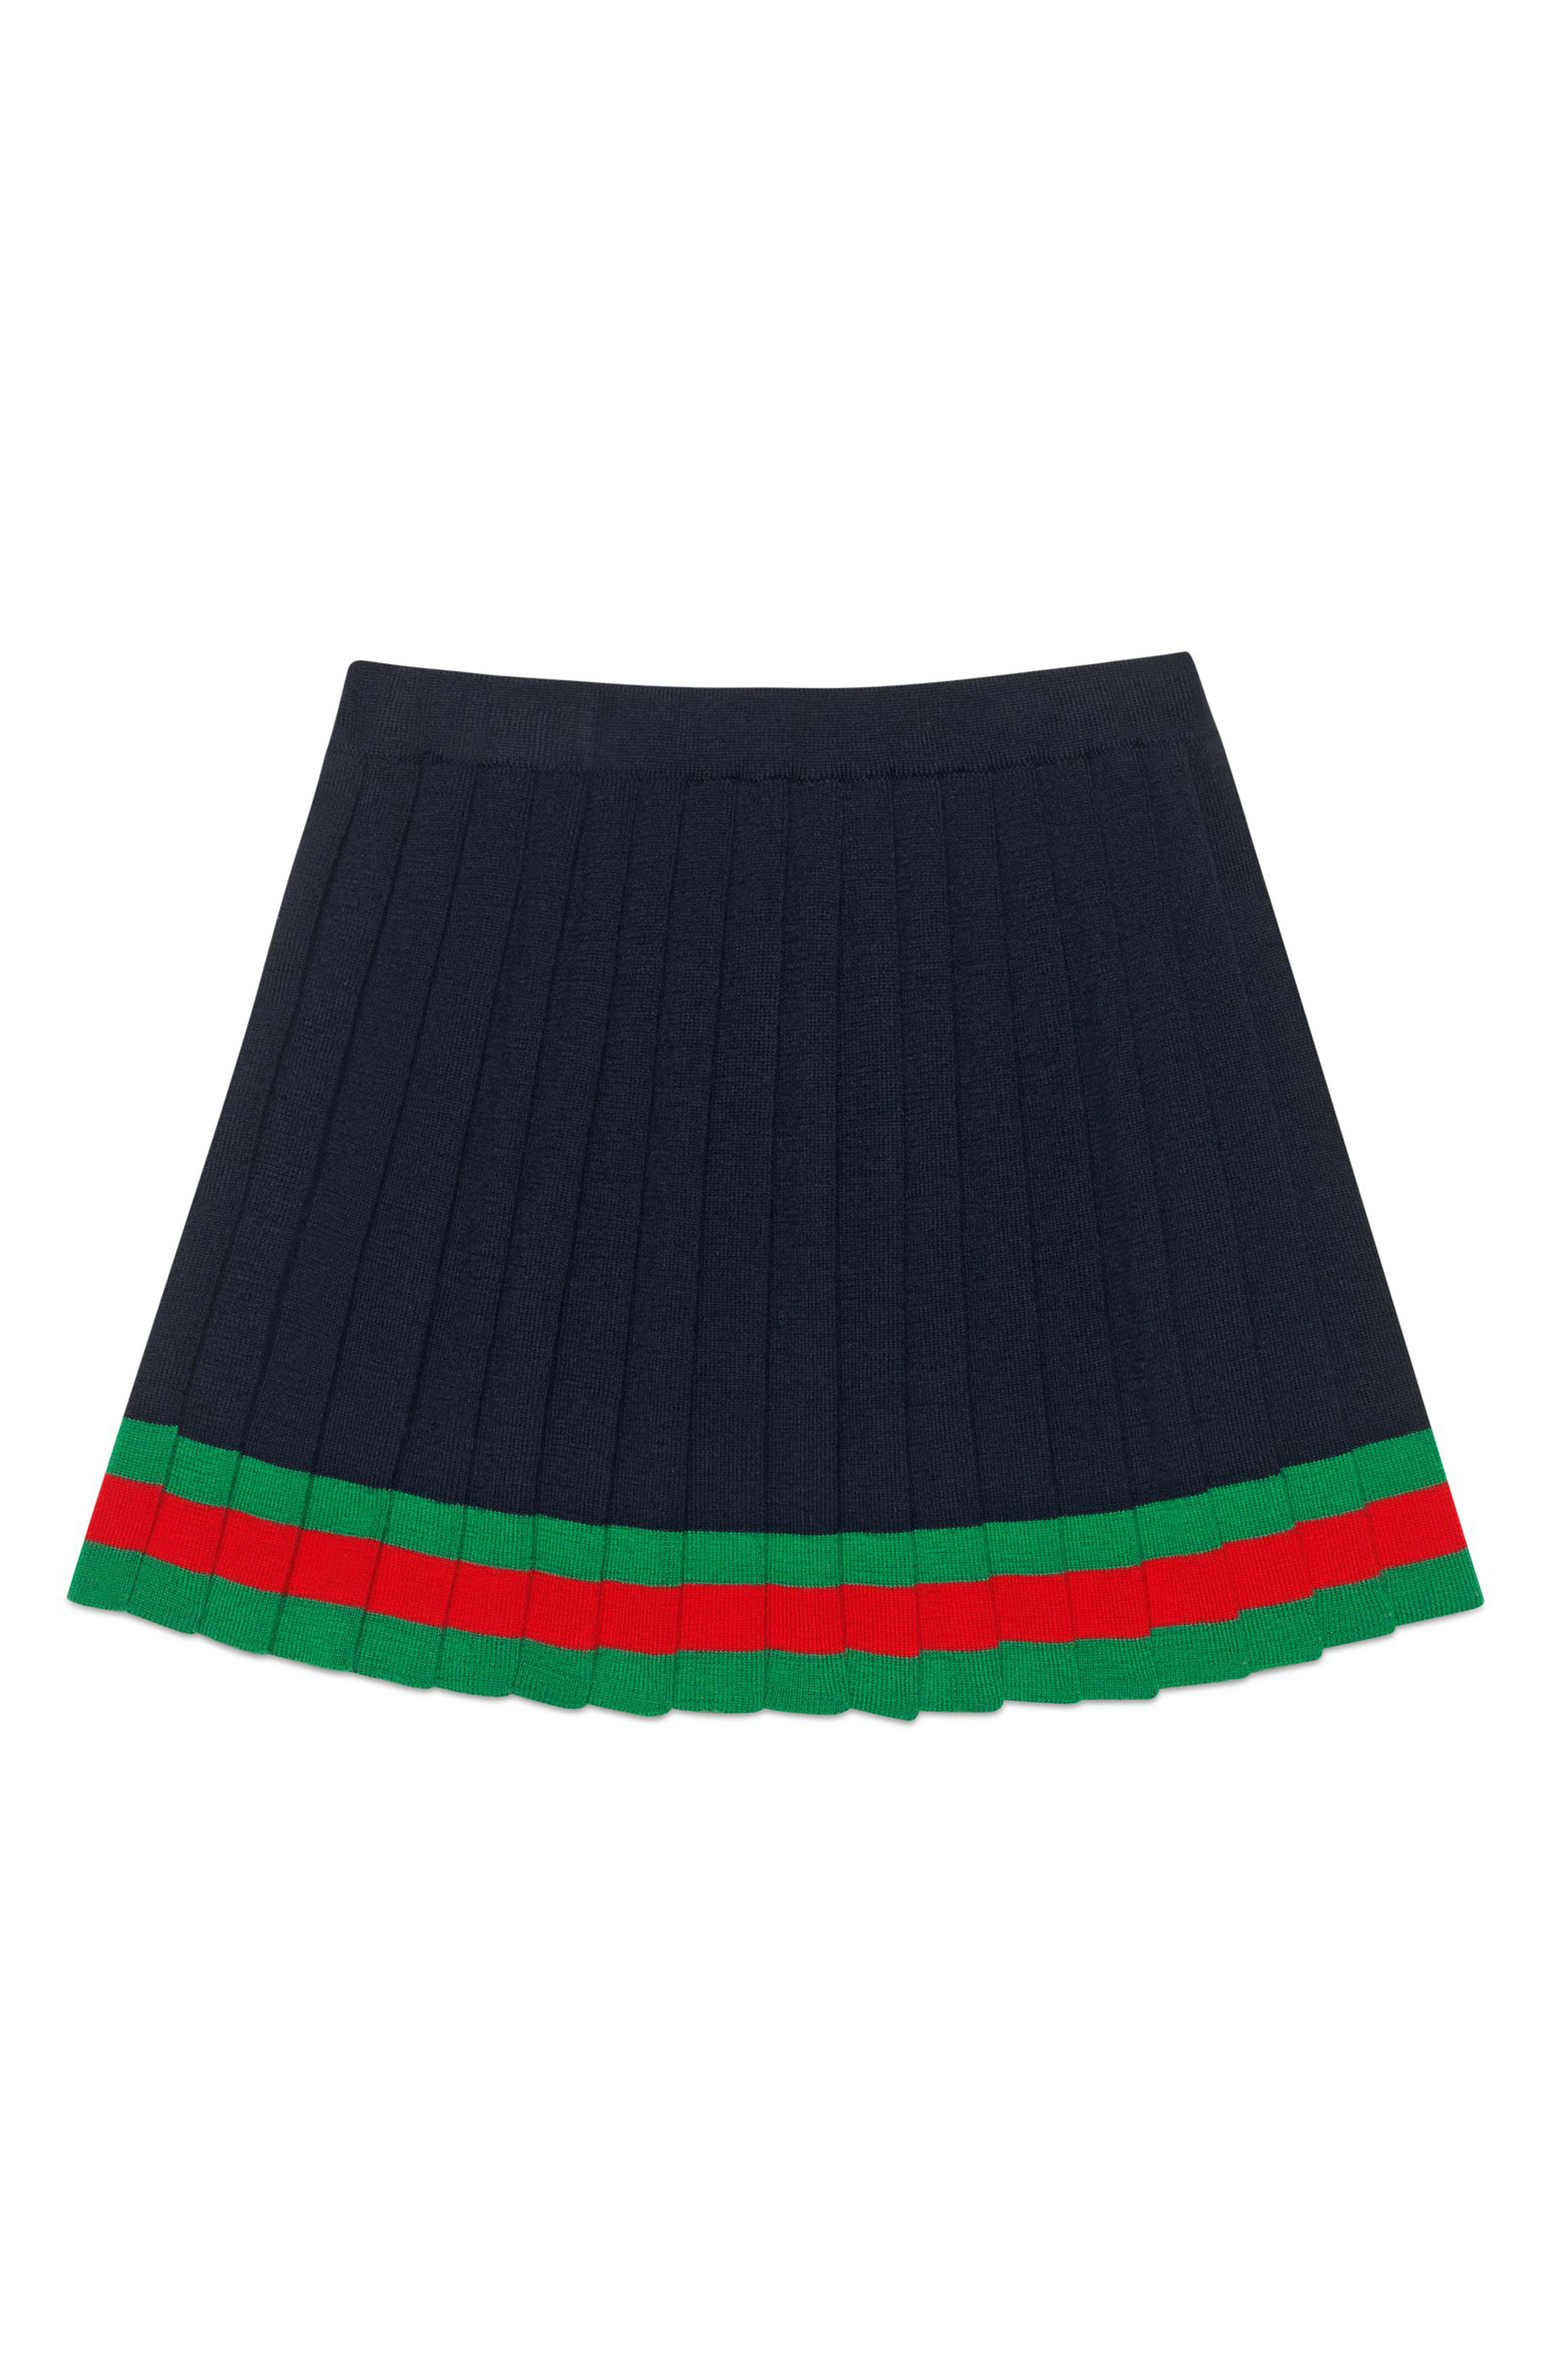 Pleated Wool Knit Skirt,                         Main,                         color, NAVY/ SHAMROCK/ L.RED